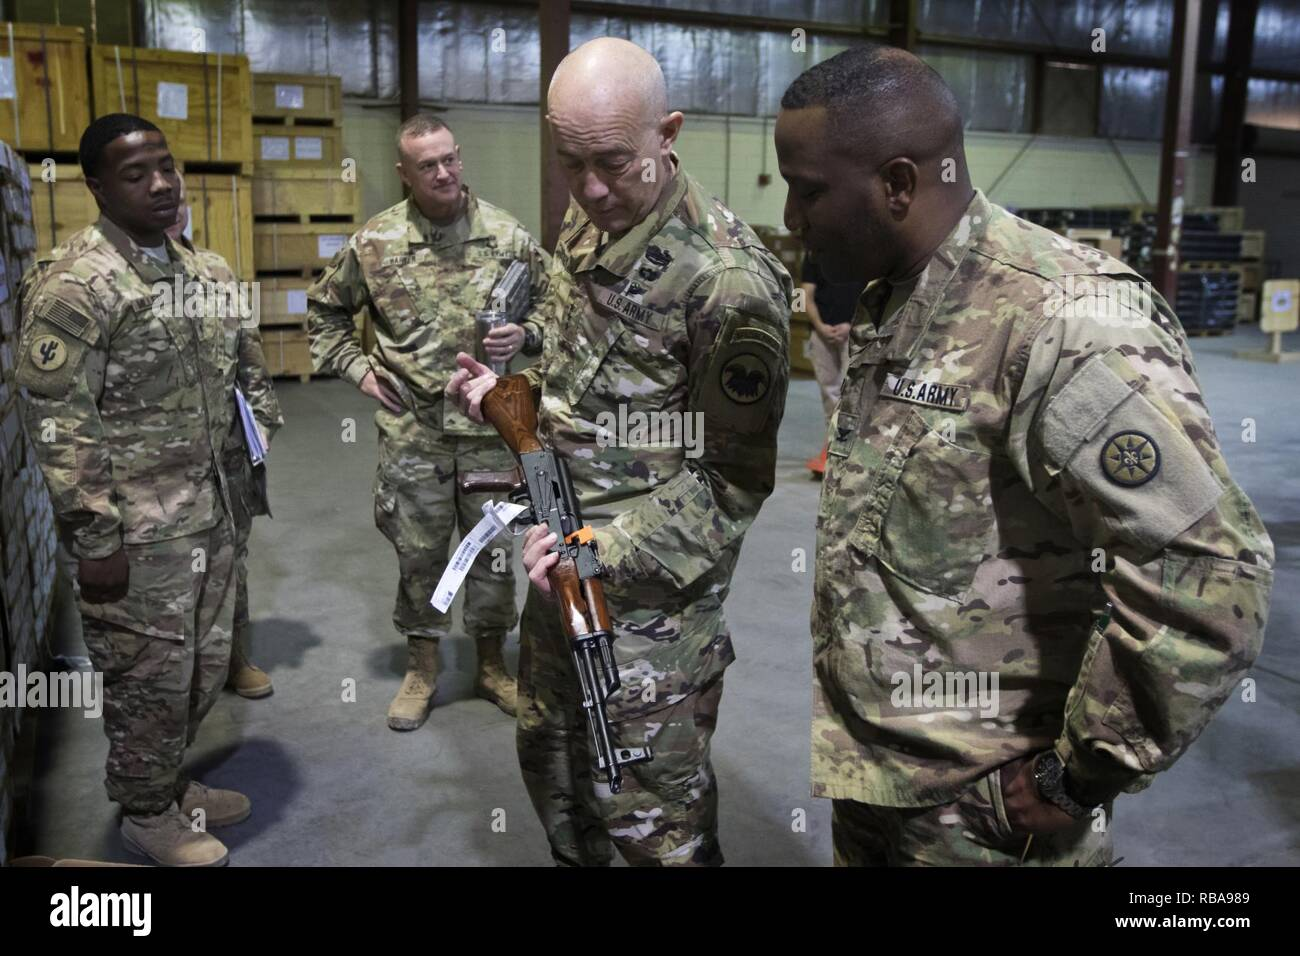 U.S. Army Reserve Commanding General, Lt. Gen. Charles D. Luckey, inspects an AK-47 rifle during a tour of the Iraq Train and Equipment Fund (ITEF) warehouse at Camp Arifjan, Kuwait, Jan. 4, 2017. - Stock Image